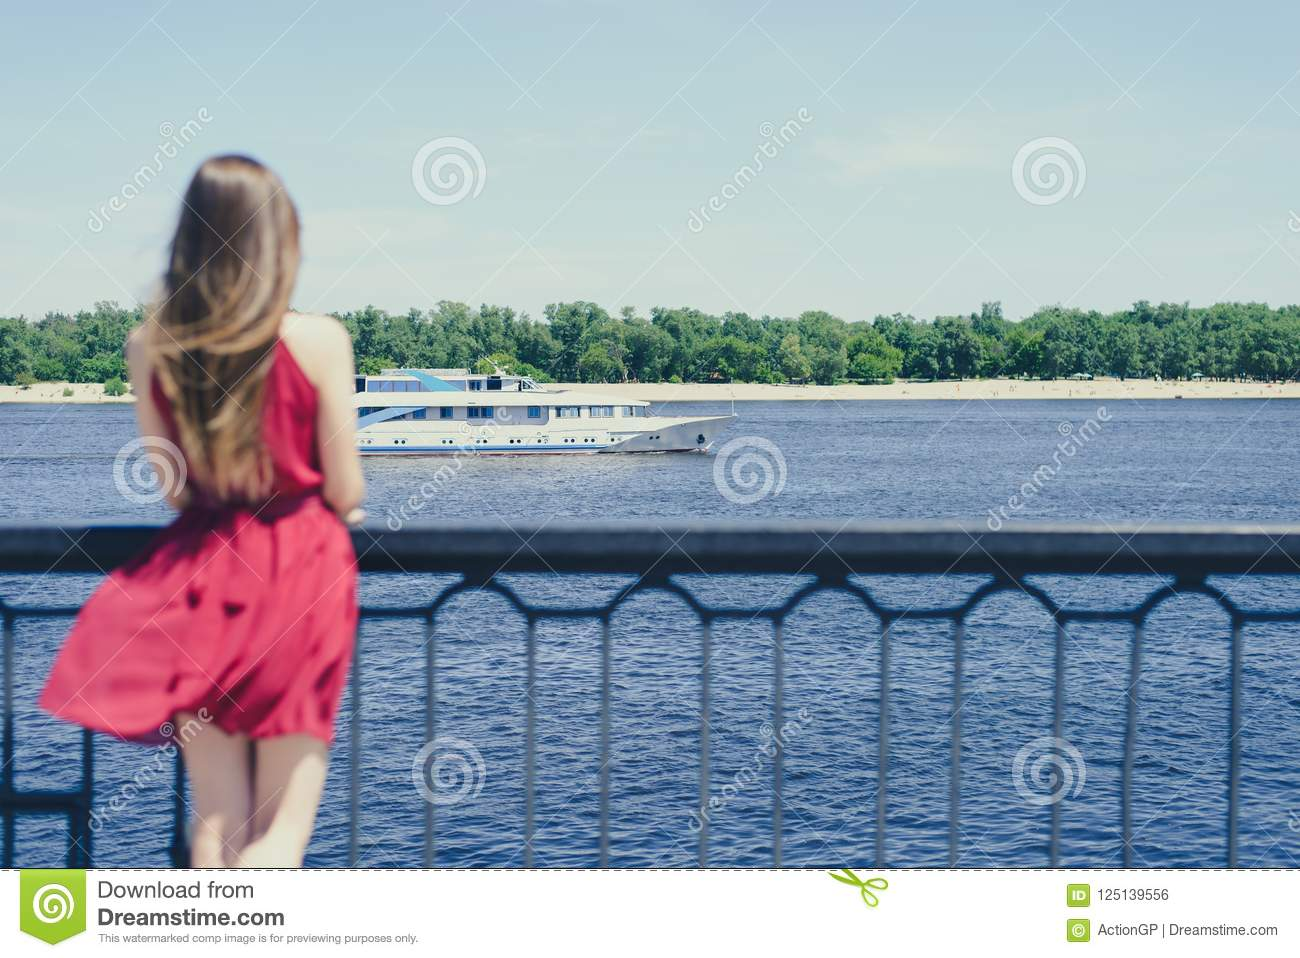 Blue sea sky life sails-man cry day dream sad dreamy lady in red dress concept. Rear back behind view photo portrait of beautiful